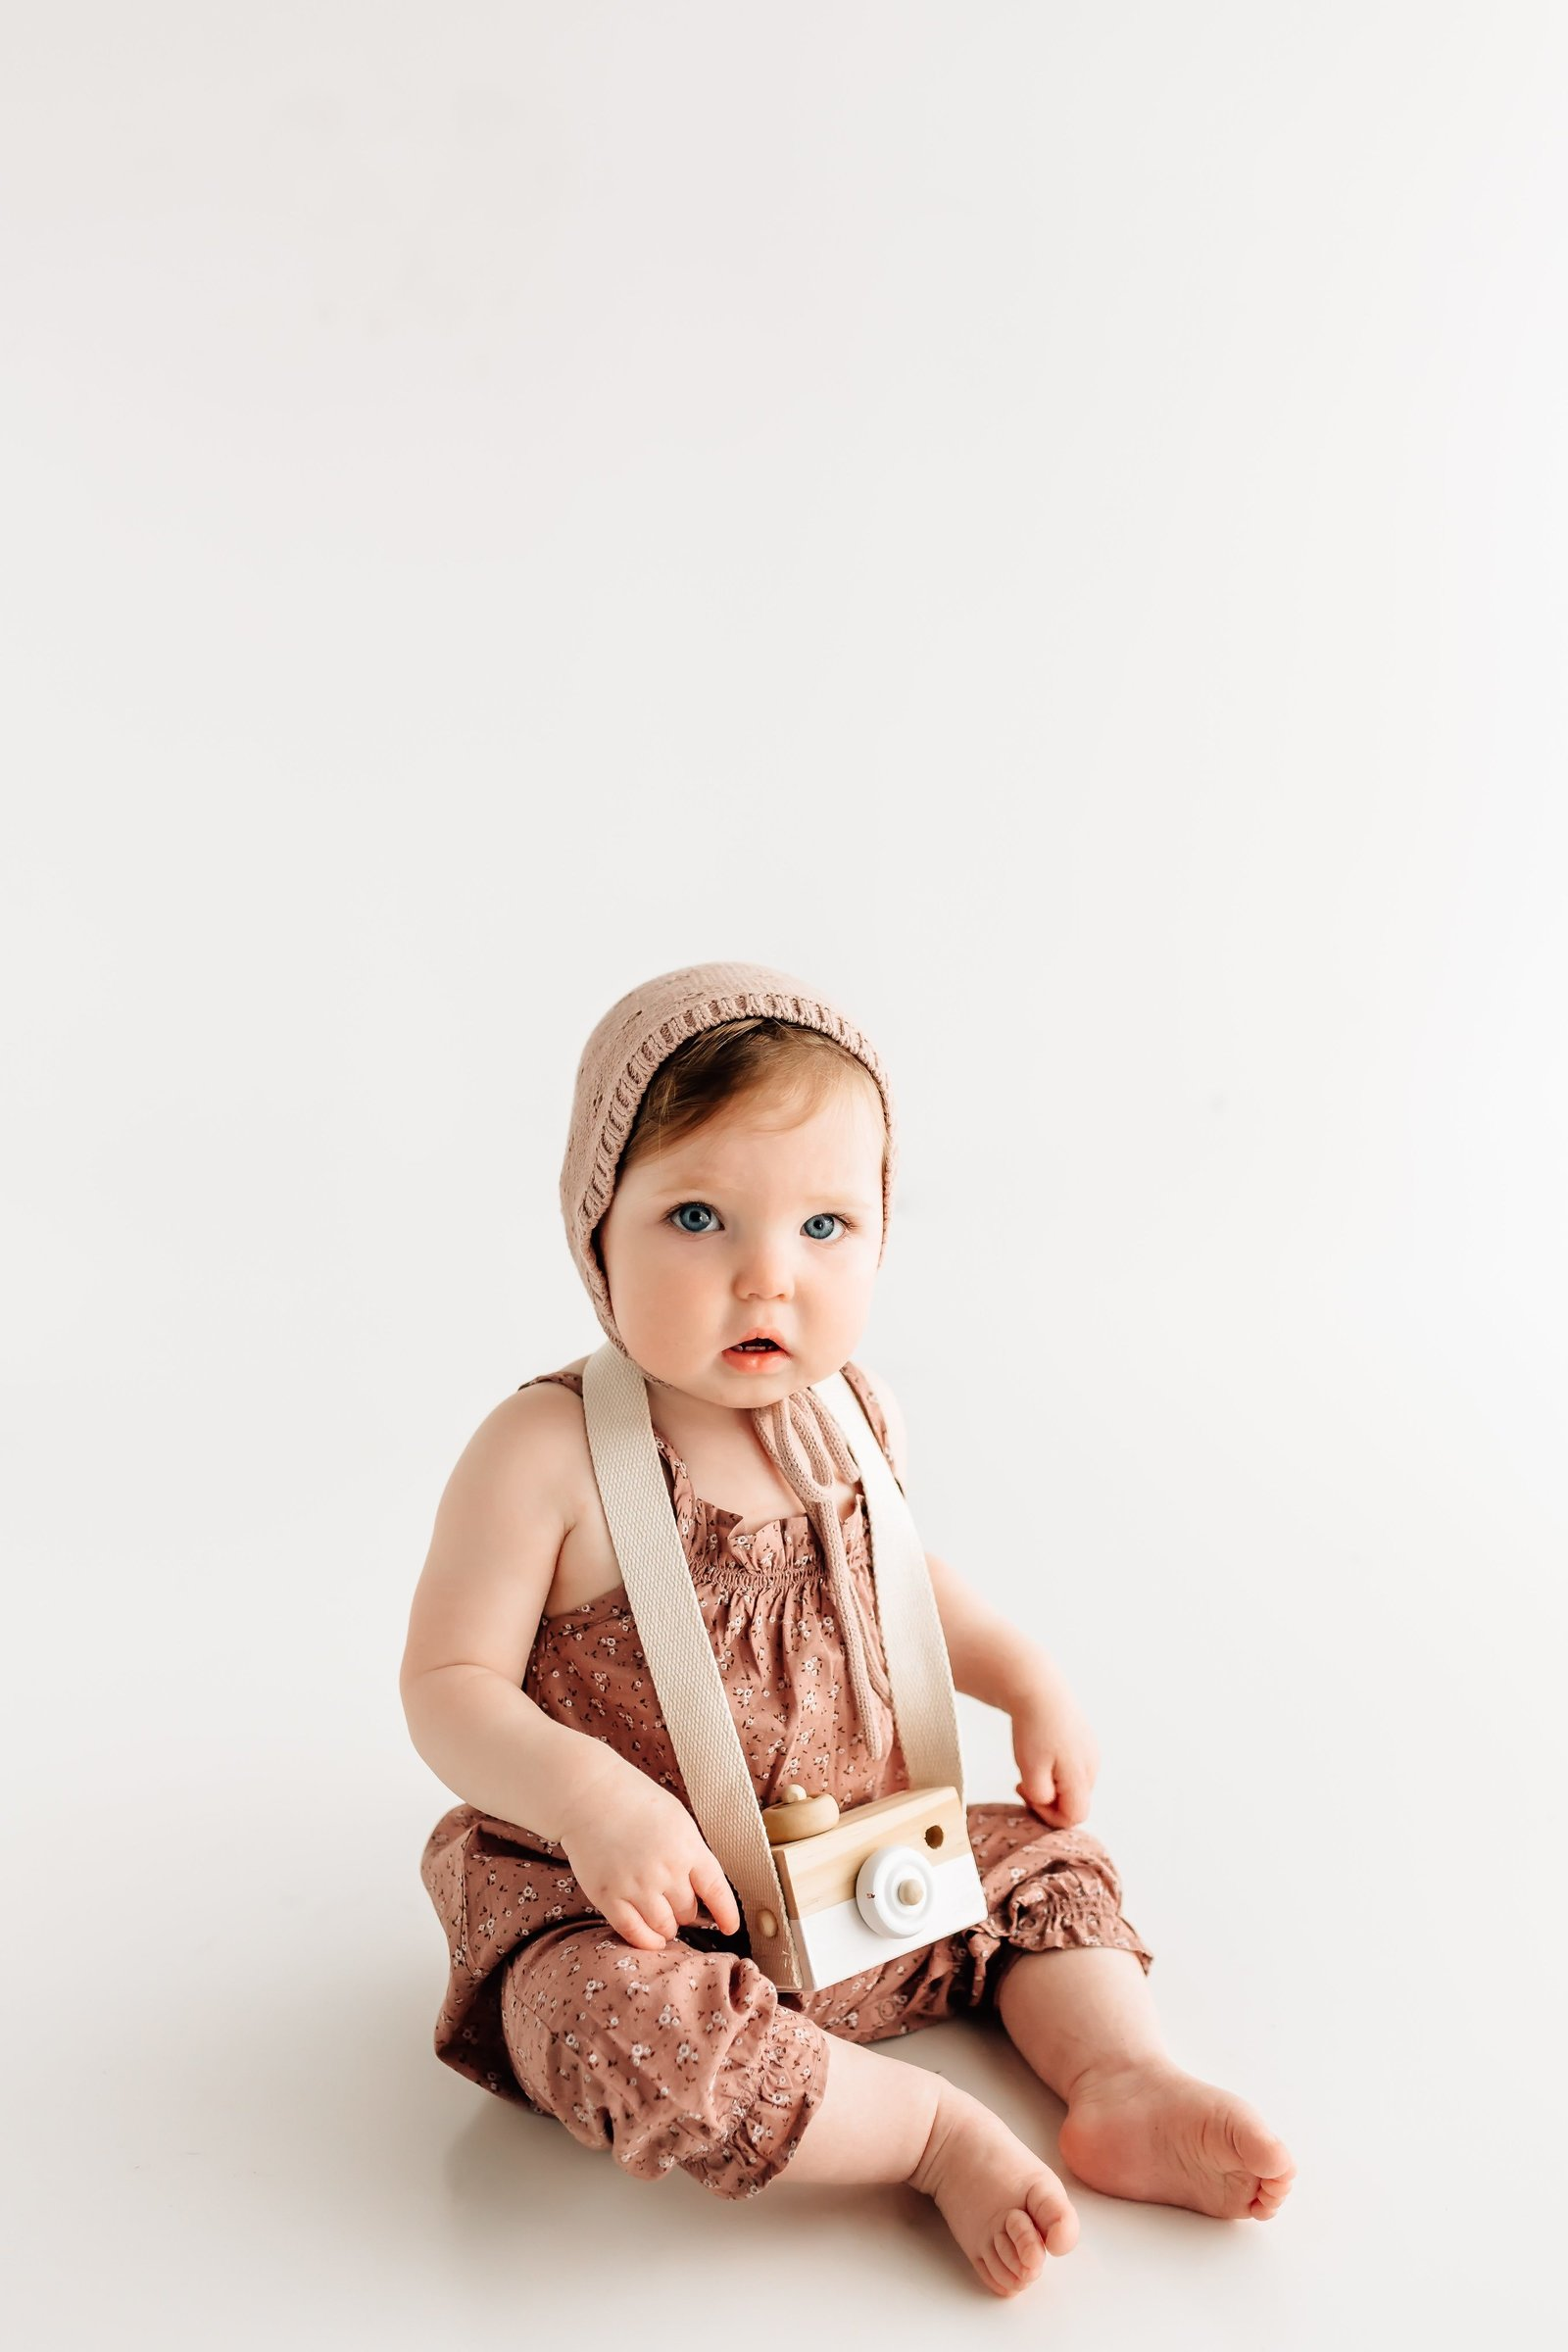 St_Louis_Baby_Photographer_Kelly_Laramore_Photography_12